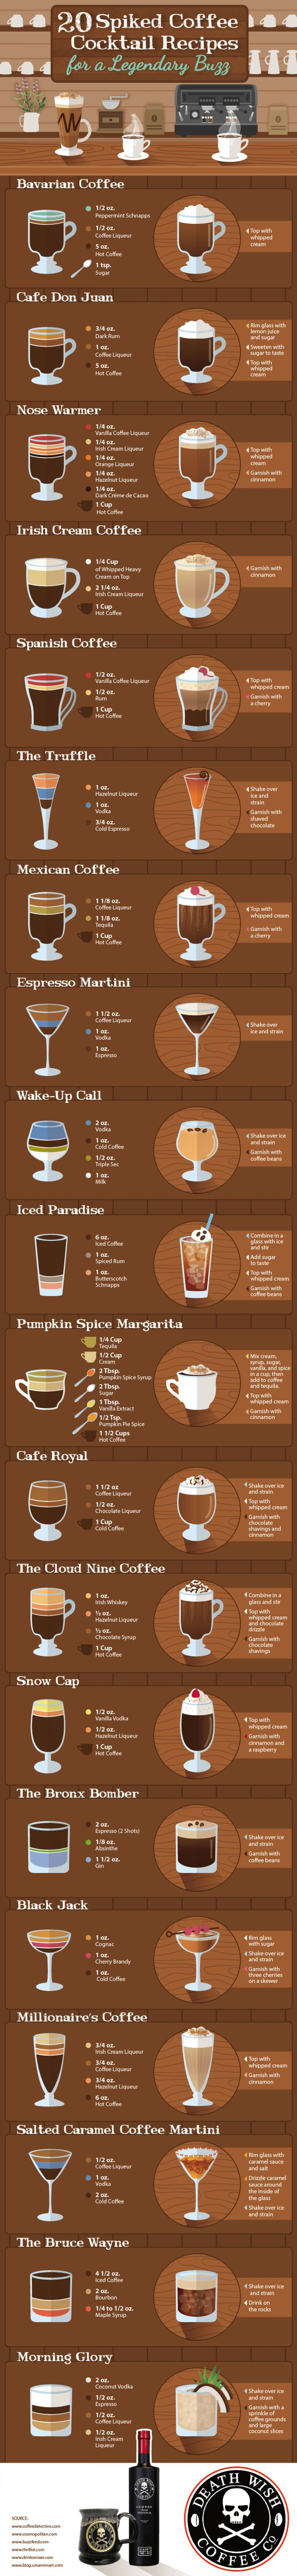 20 Spiked Coffee Cocktail Recipes for a Legendary Buzz Infographic